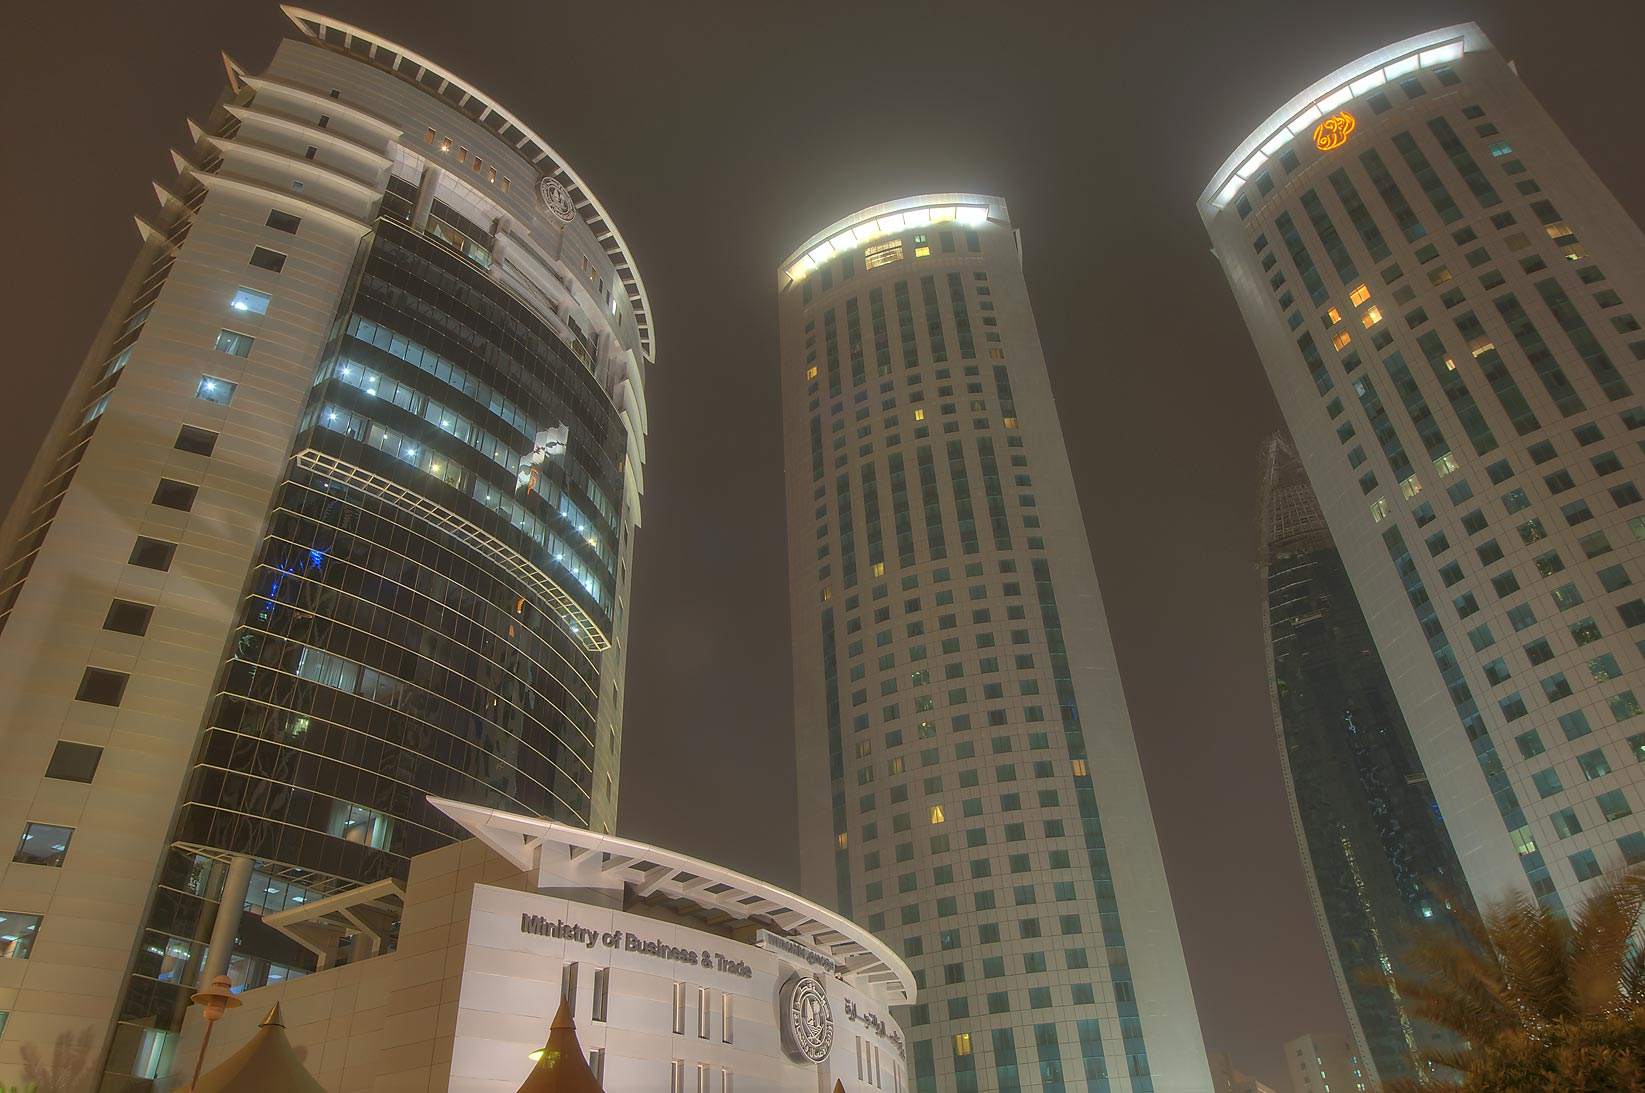 Ministry of Economy and Al Fardan towers in West...and Al Funduq streets. Doha, Qatar